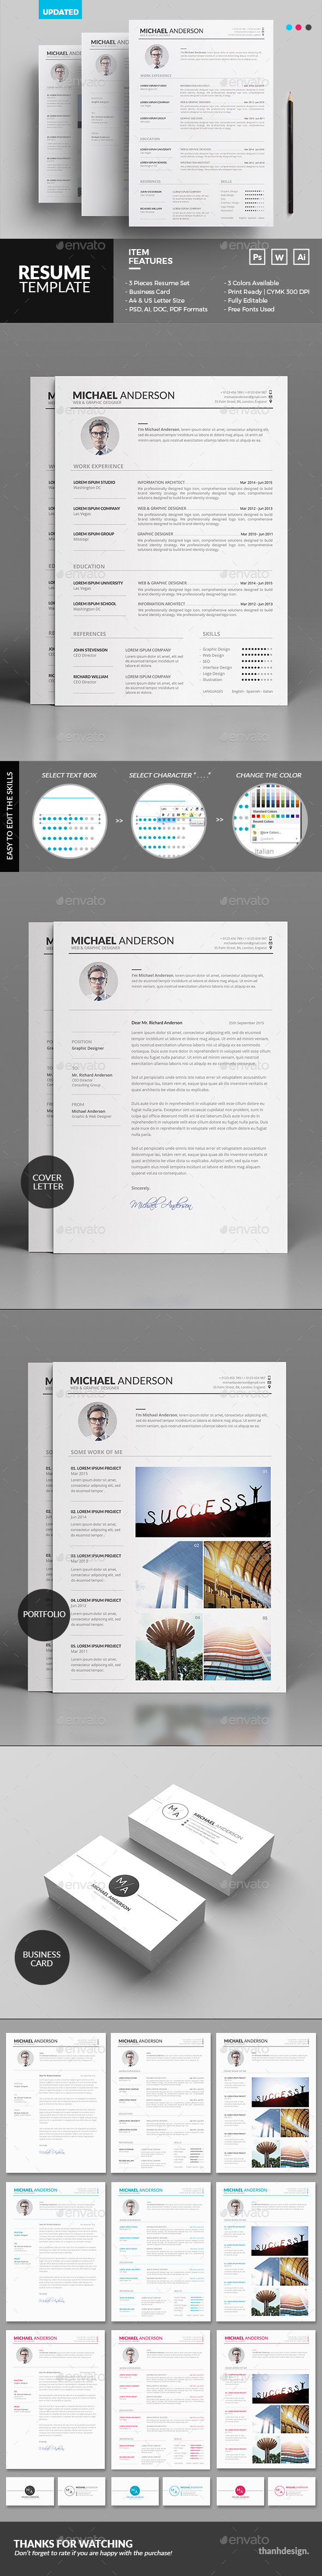 cv and resume format%0A Resume  Resumes Stationery